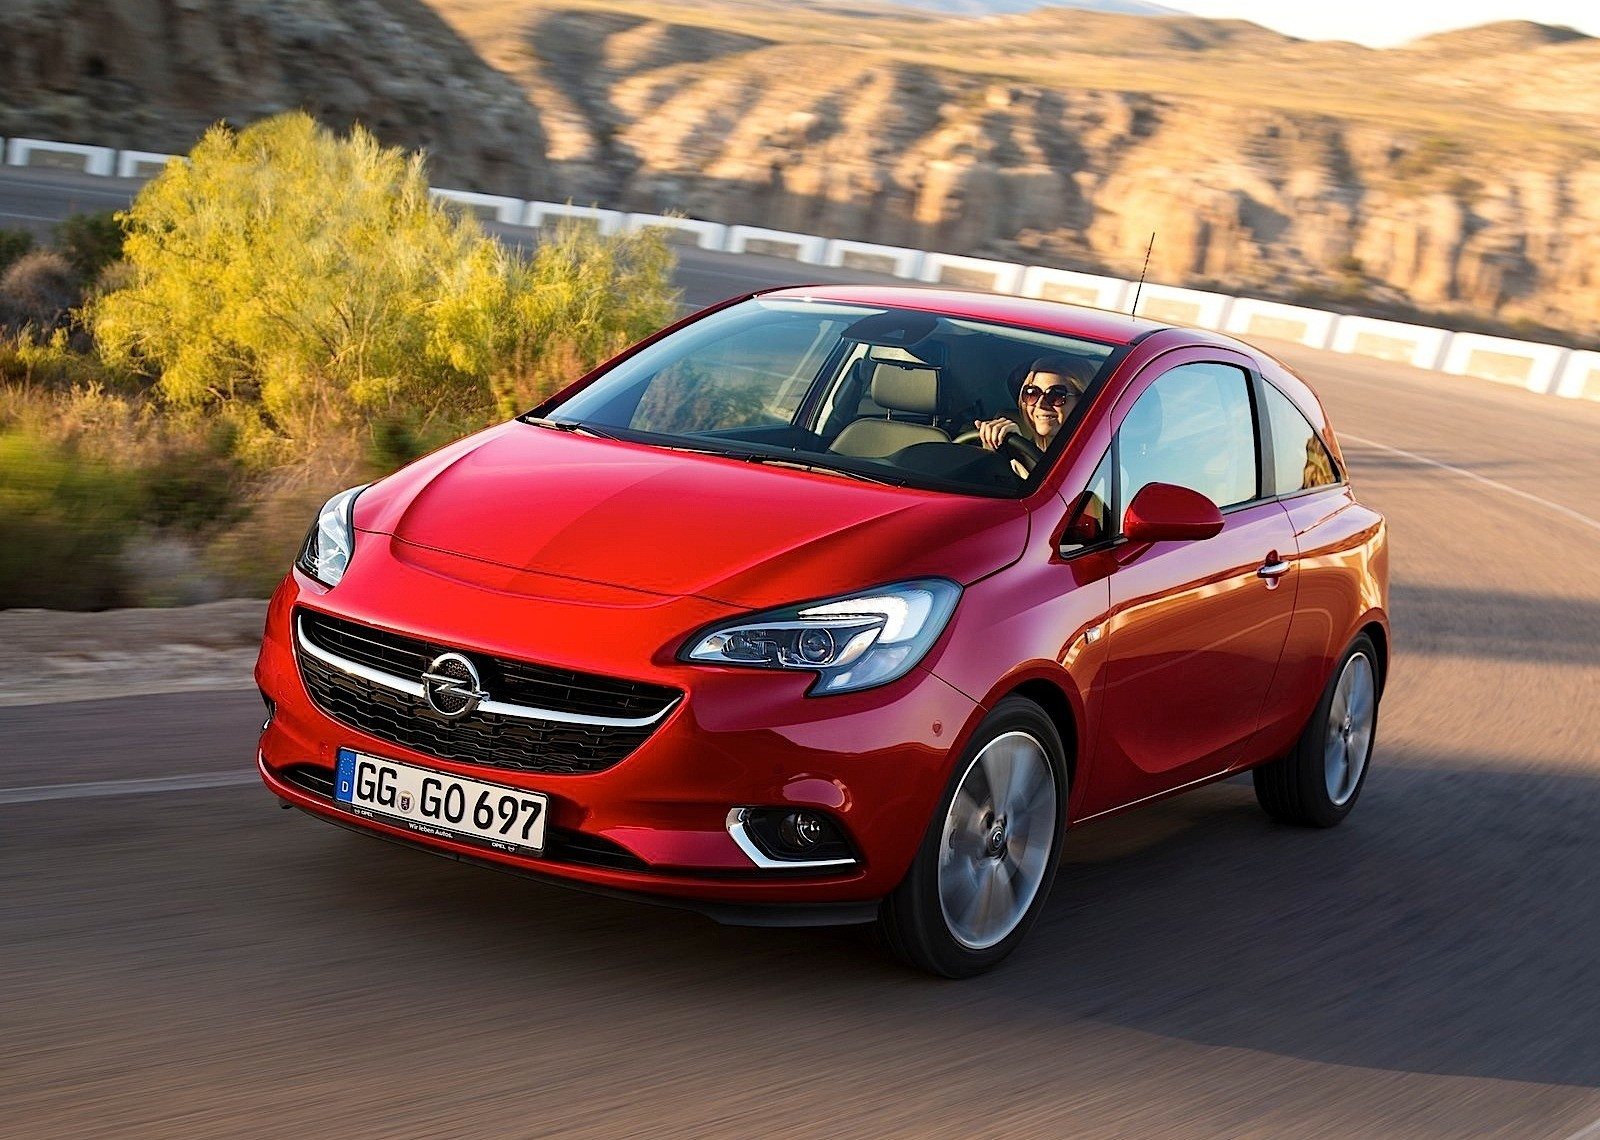 2017 opel vauxhall corsa uk review highlights more flaws than expected autoevolution. Black Bedroom Furniture Sets. Home Design Ideas